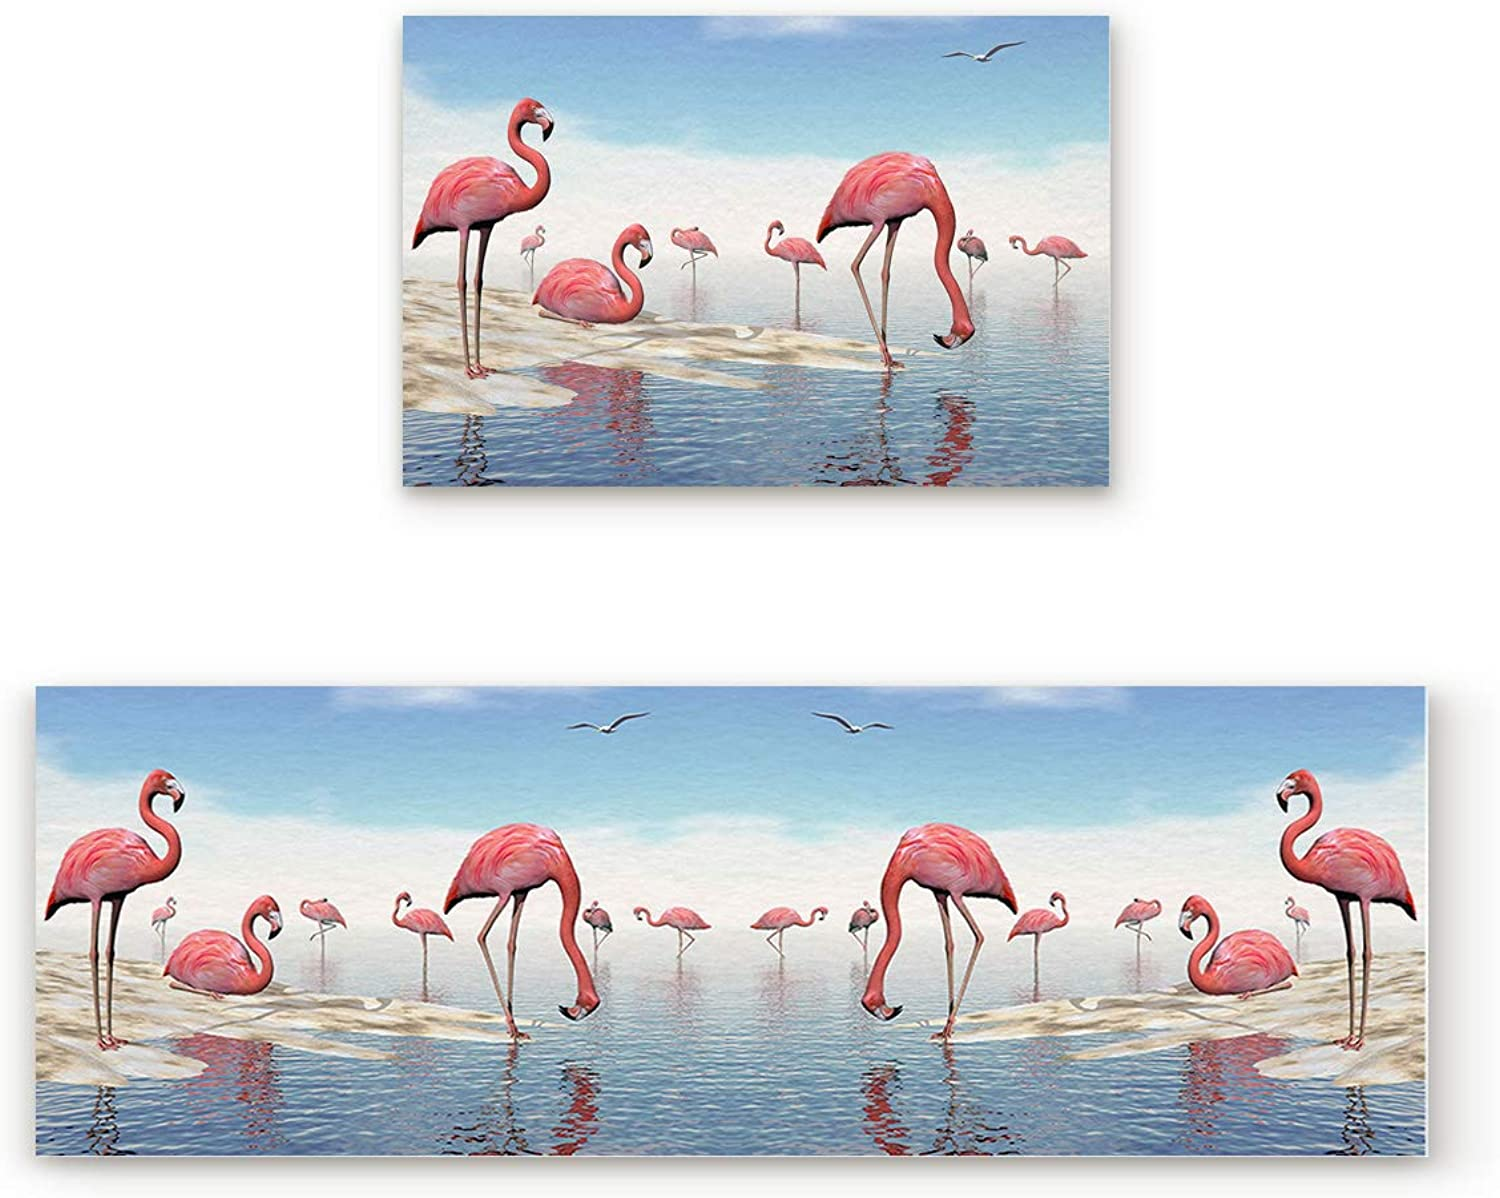 Aomike 2 Piece Non-Slip Kitchen Mat Rubber Backing Doormat Flamingo in The Lake Runner Rug Set, Hallway Living Room Balcony Bathroom Carpet Sets (19.7  x 31.5 +19.7  x 47.2 )